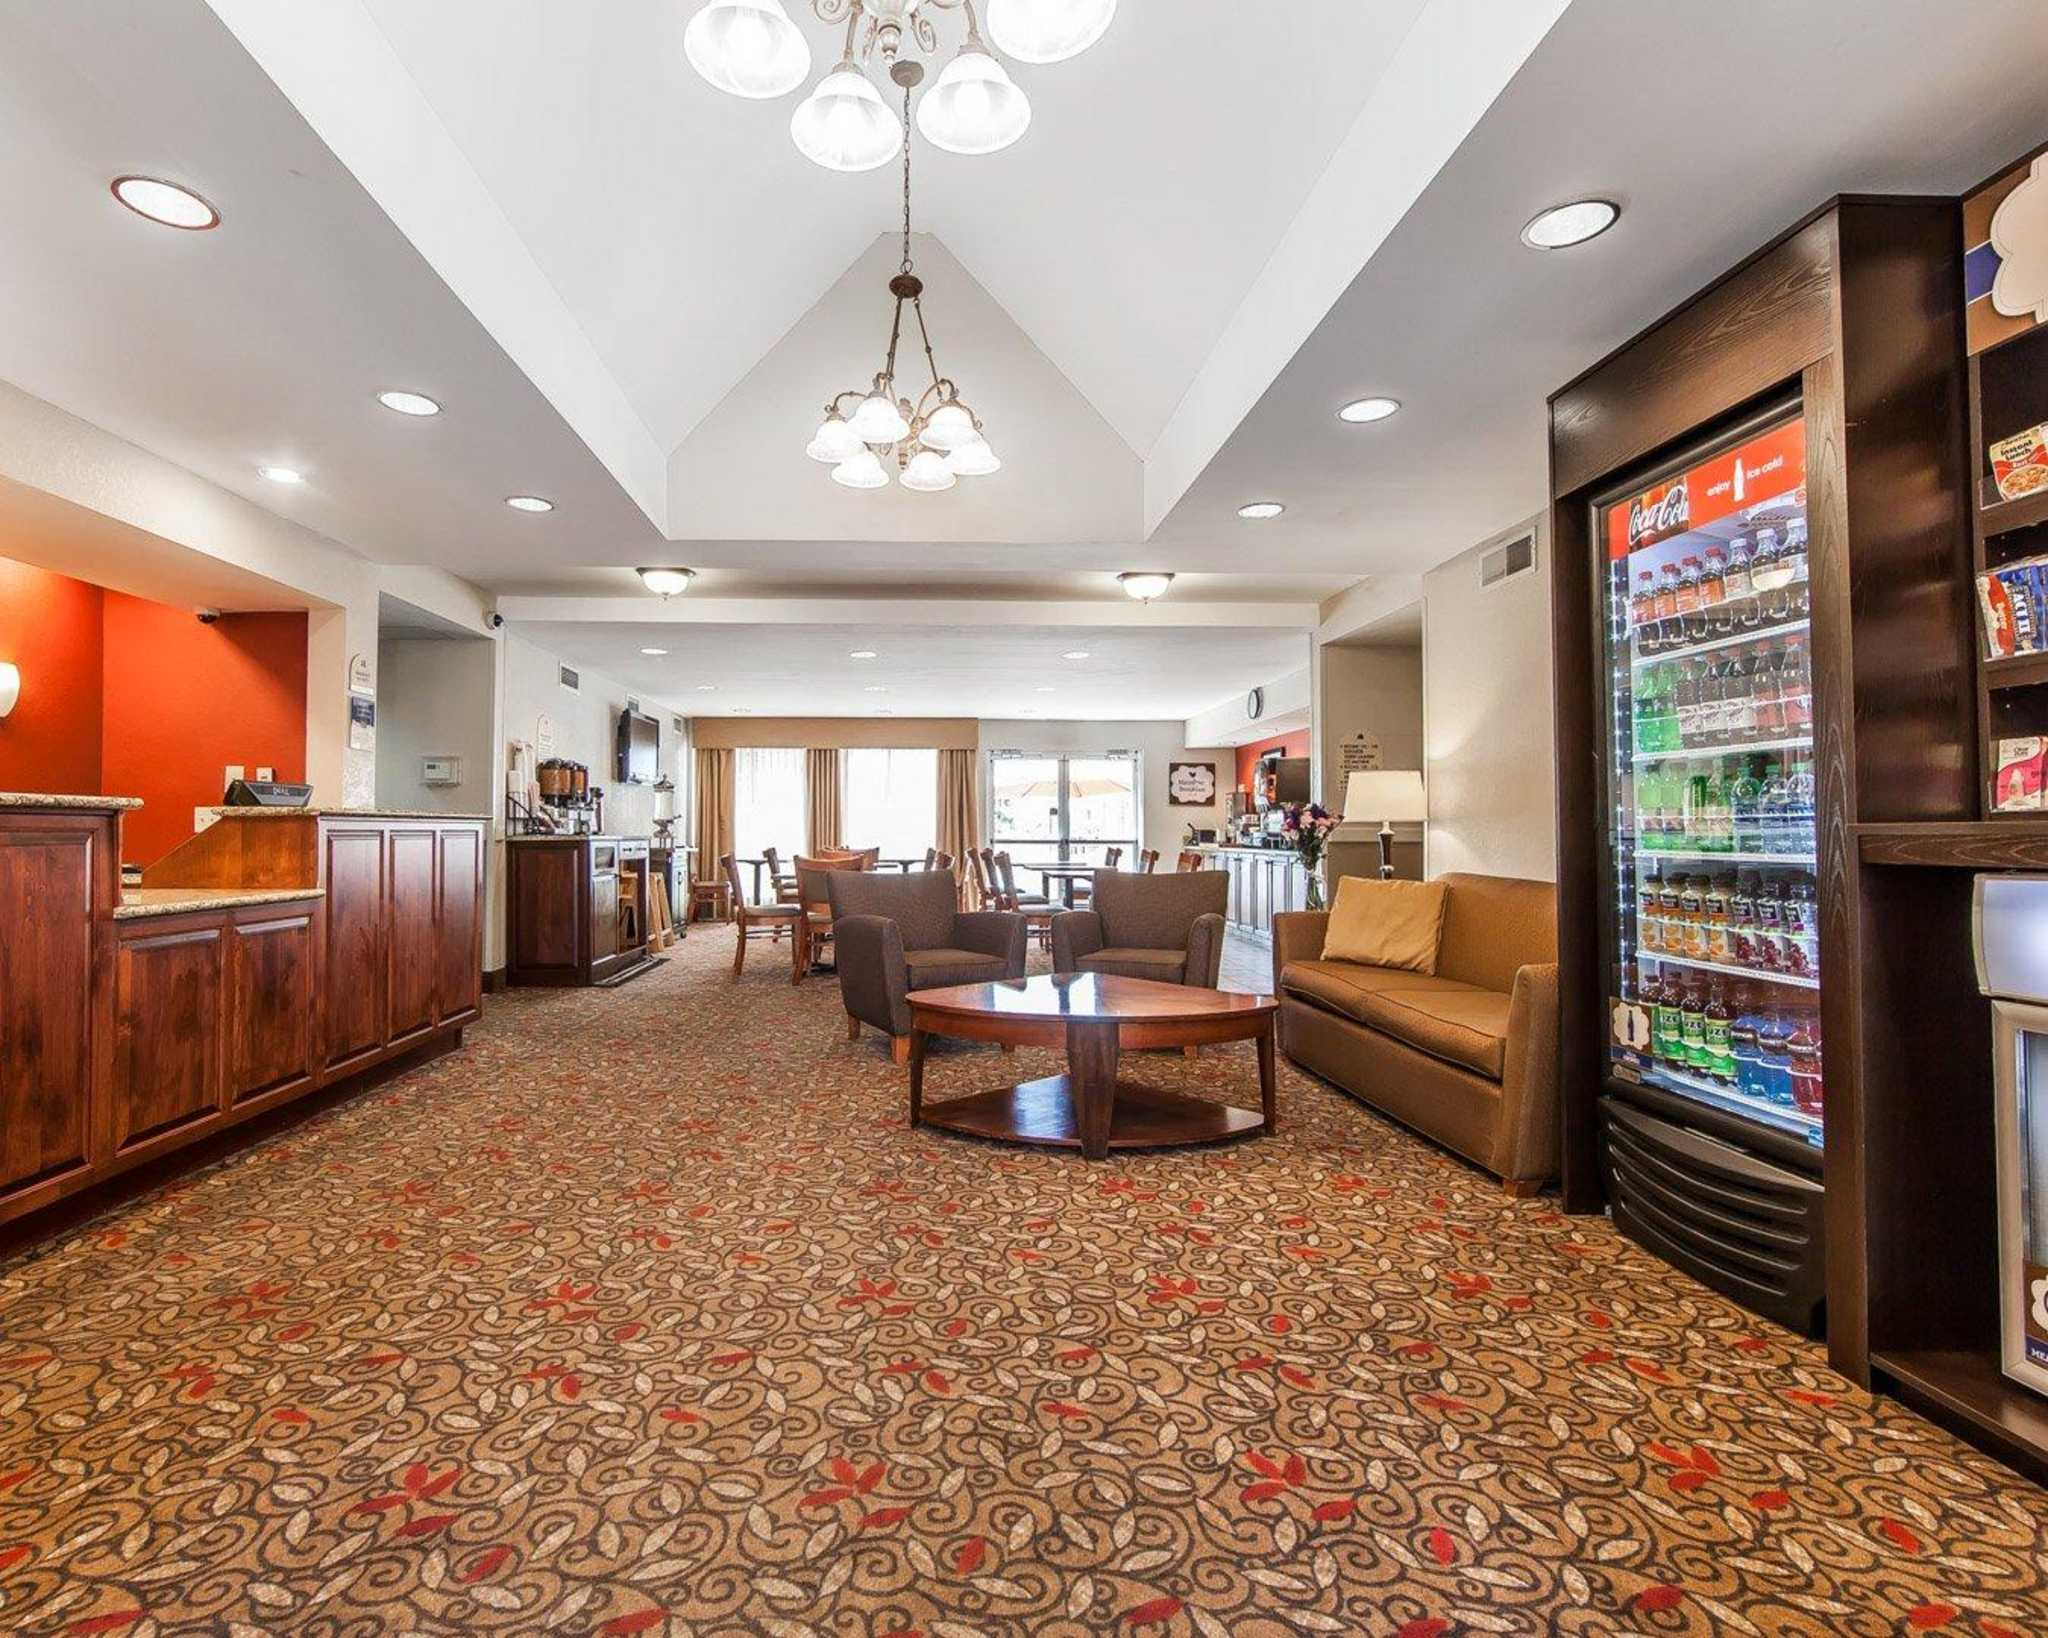 MainStay Suites Knoxville Airport image 6